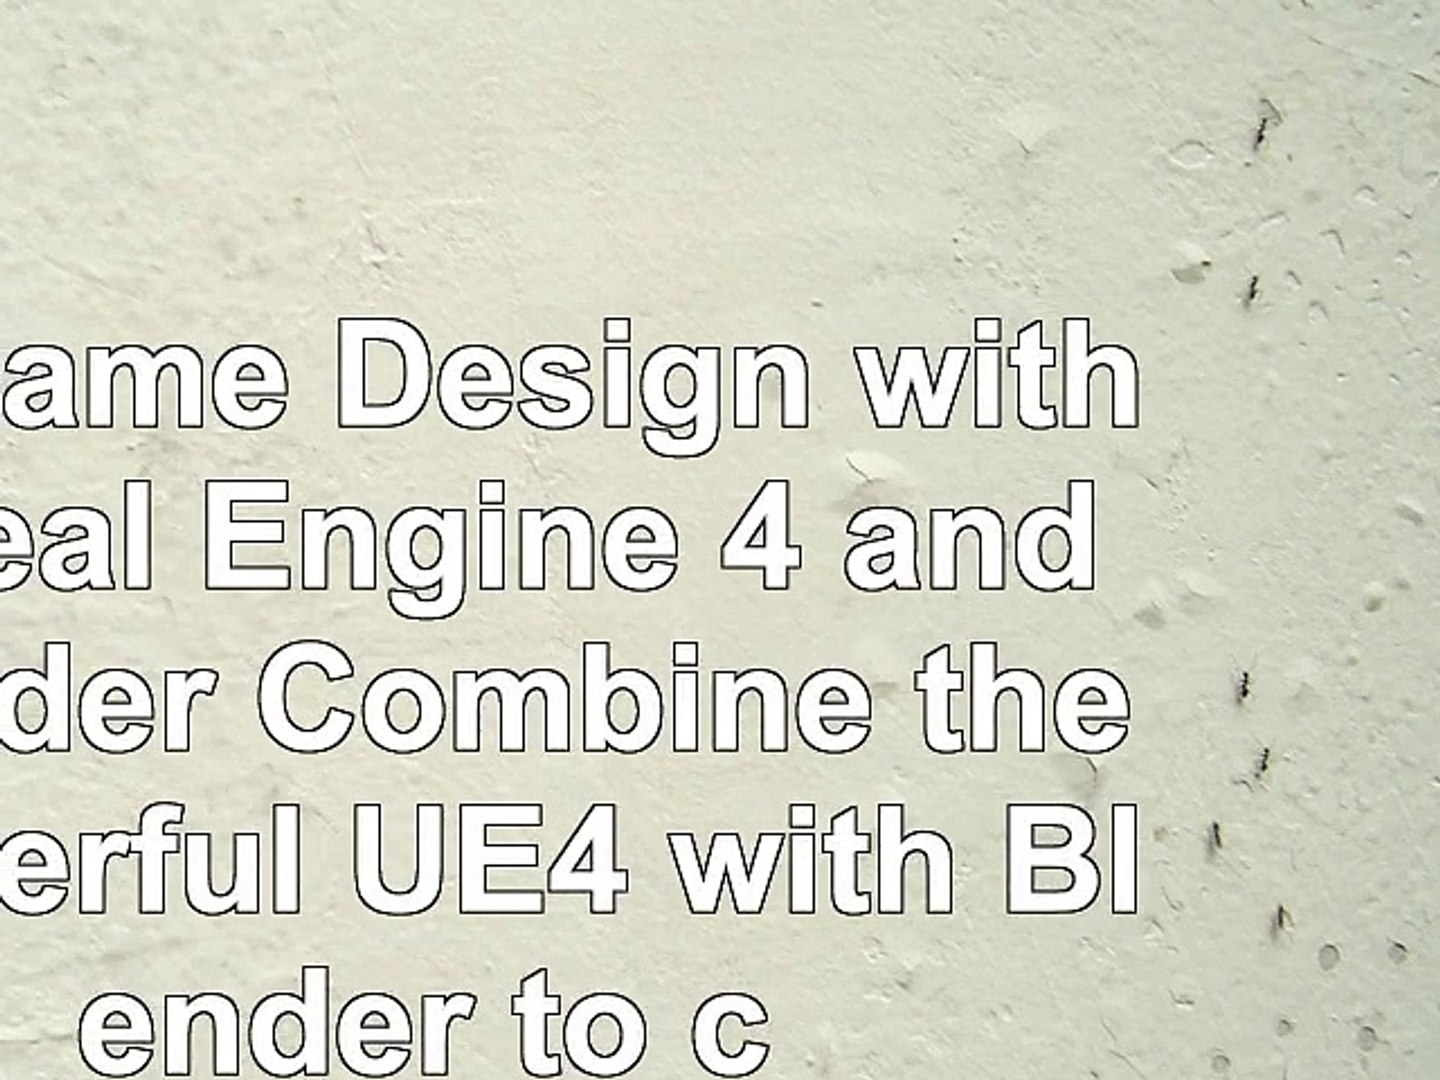 3D Game Design with Unreal Engine 4 and Blender Combine the powerful UE4 with Blender to ce4e1473